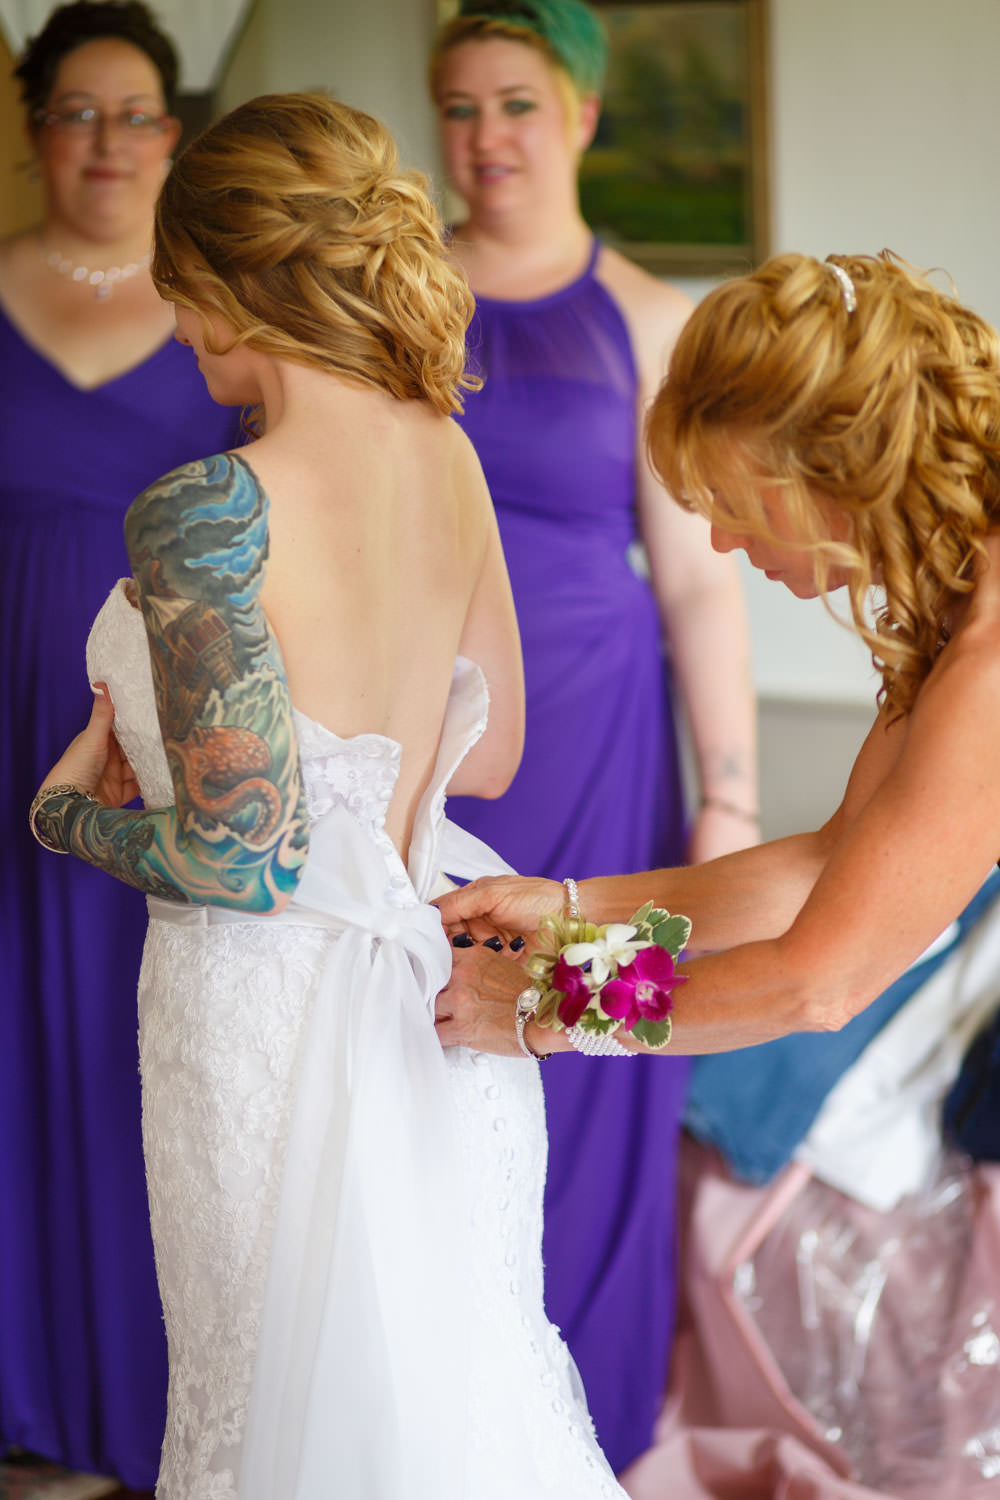 The brides mother zipping up her wedding dress. Purple bridesmaids dresses in the background in the bridal suite. The bride has intricate tattoo on her left arm.